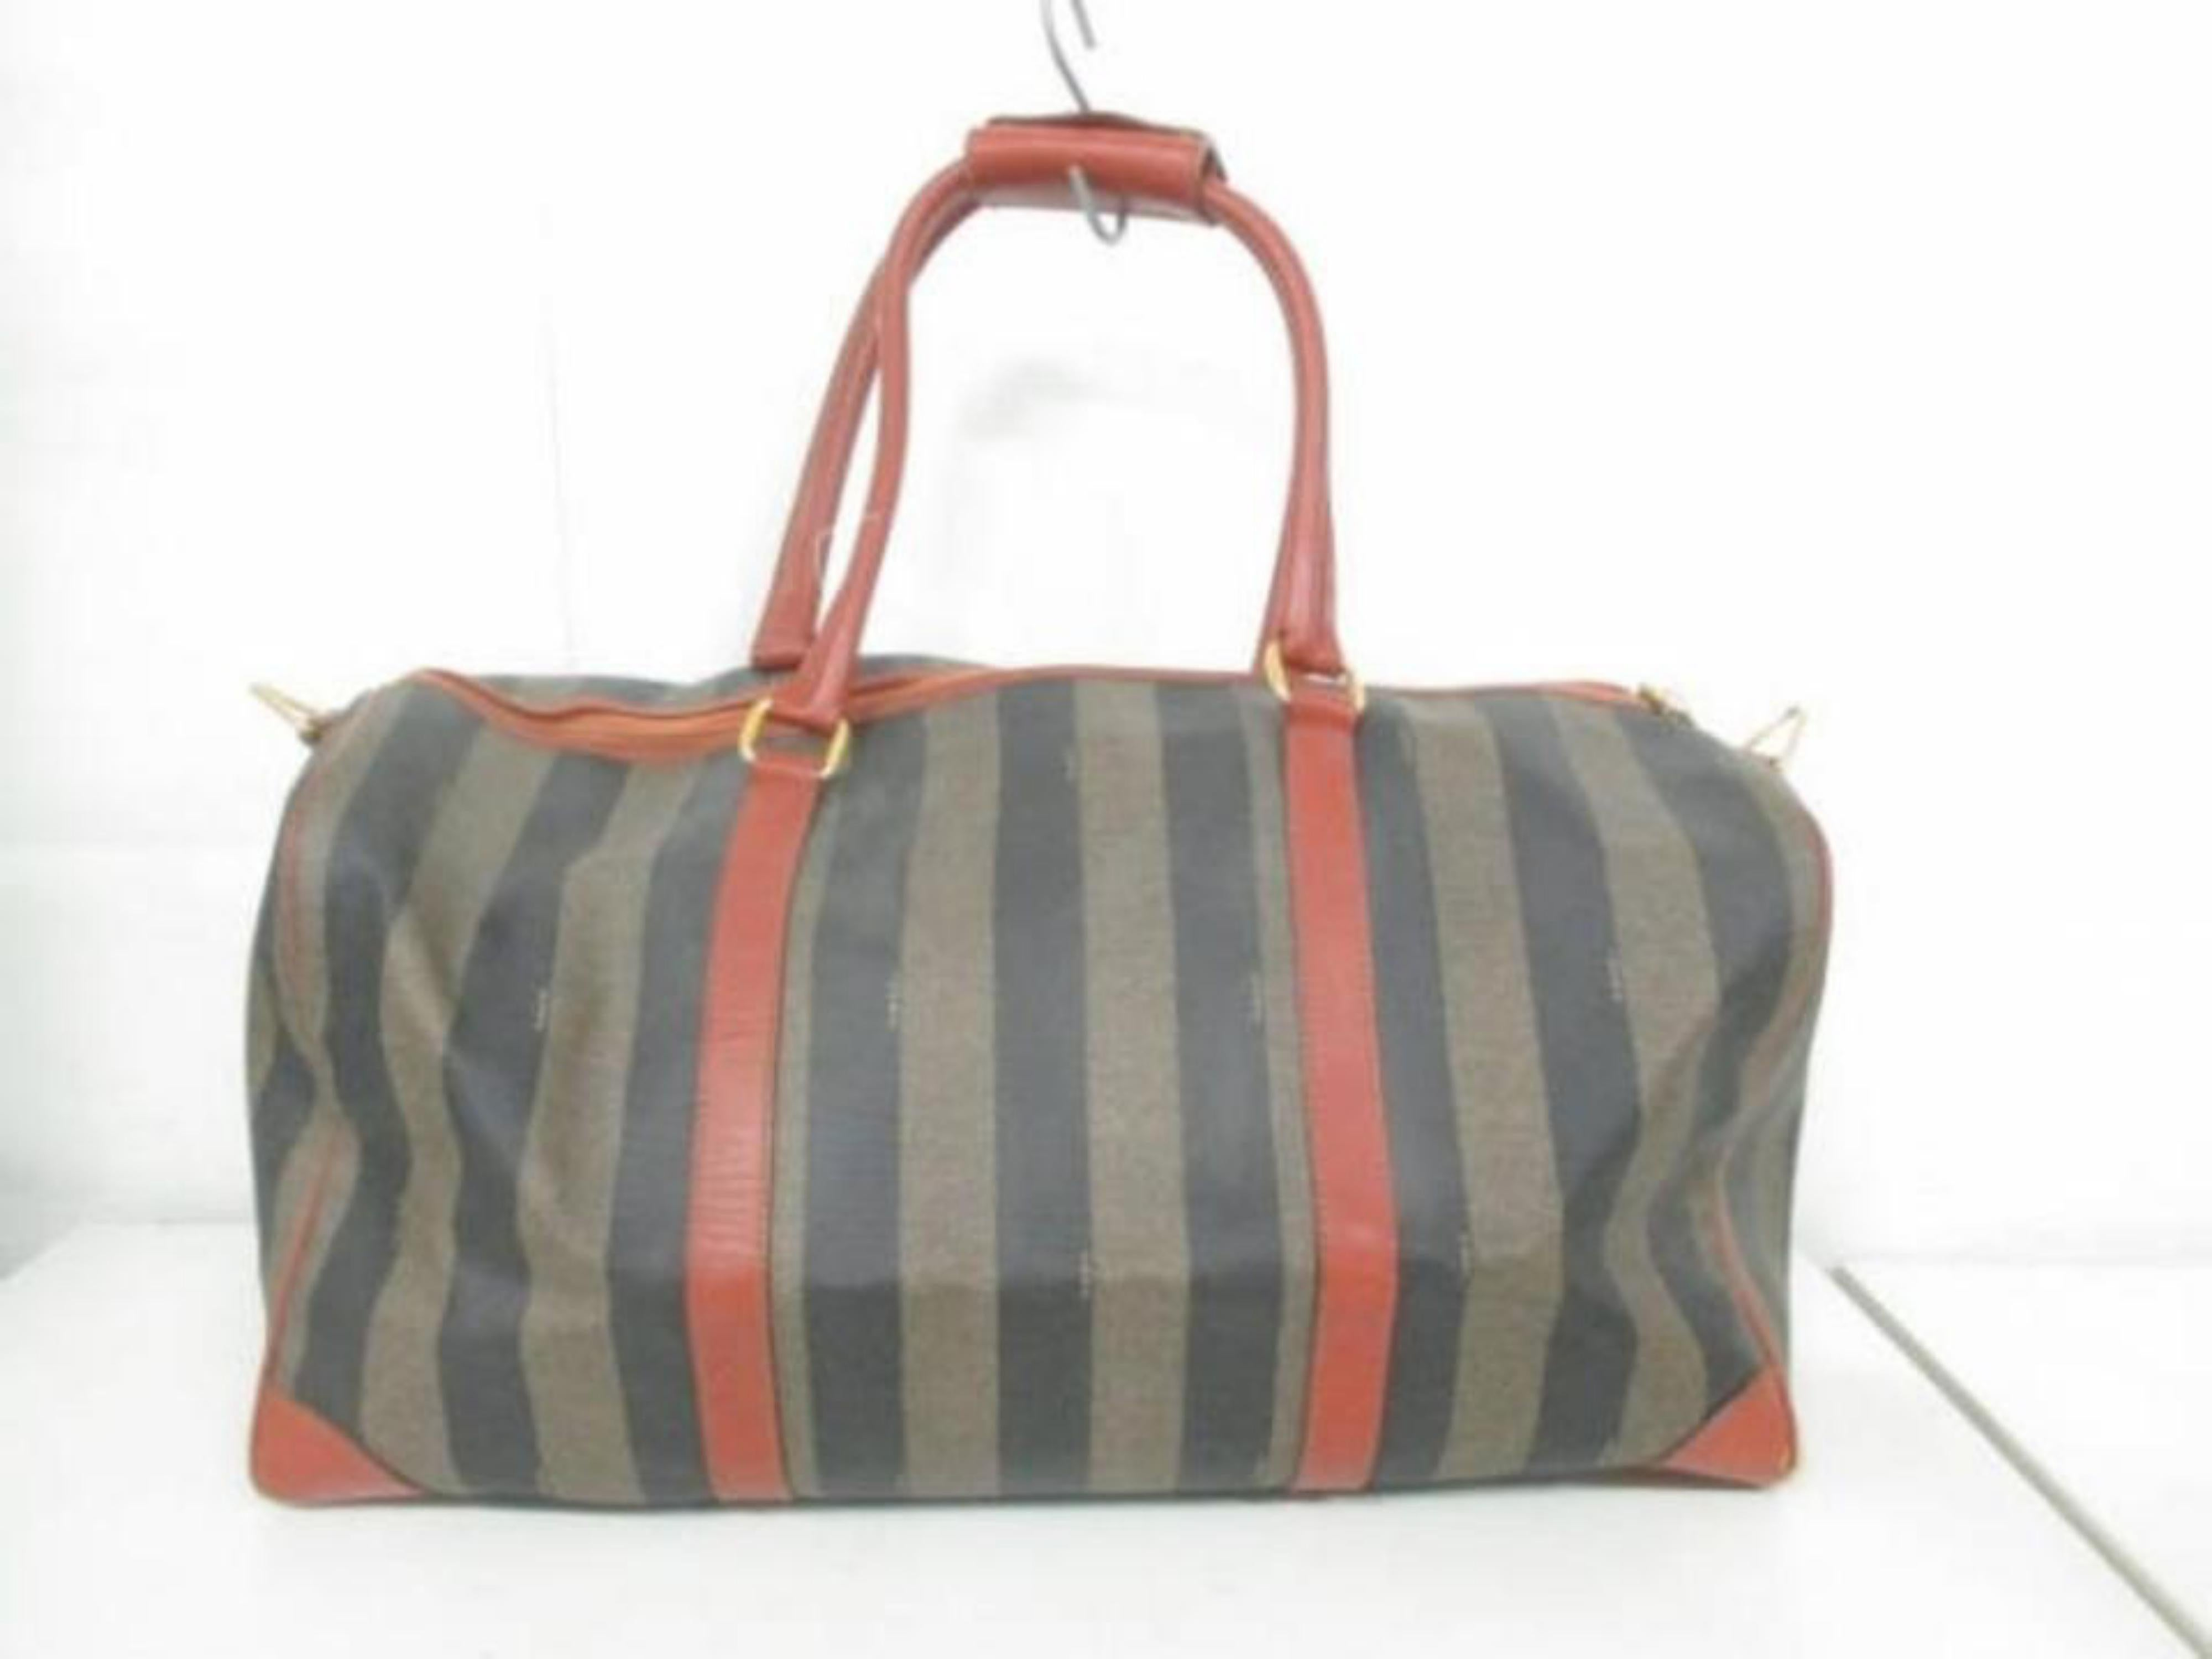 e66c9189daaf Fendi Pequin Stripe Boston Duffle 228051 Tobacco Coated Canvas X Leather  Weekend For Sale at 1stdibs